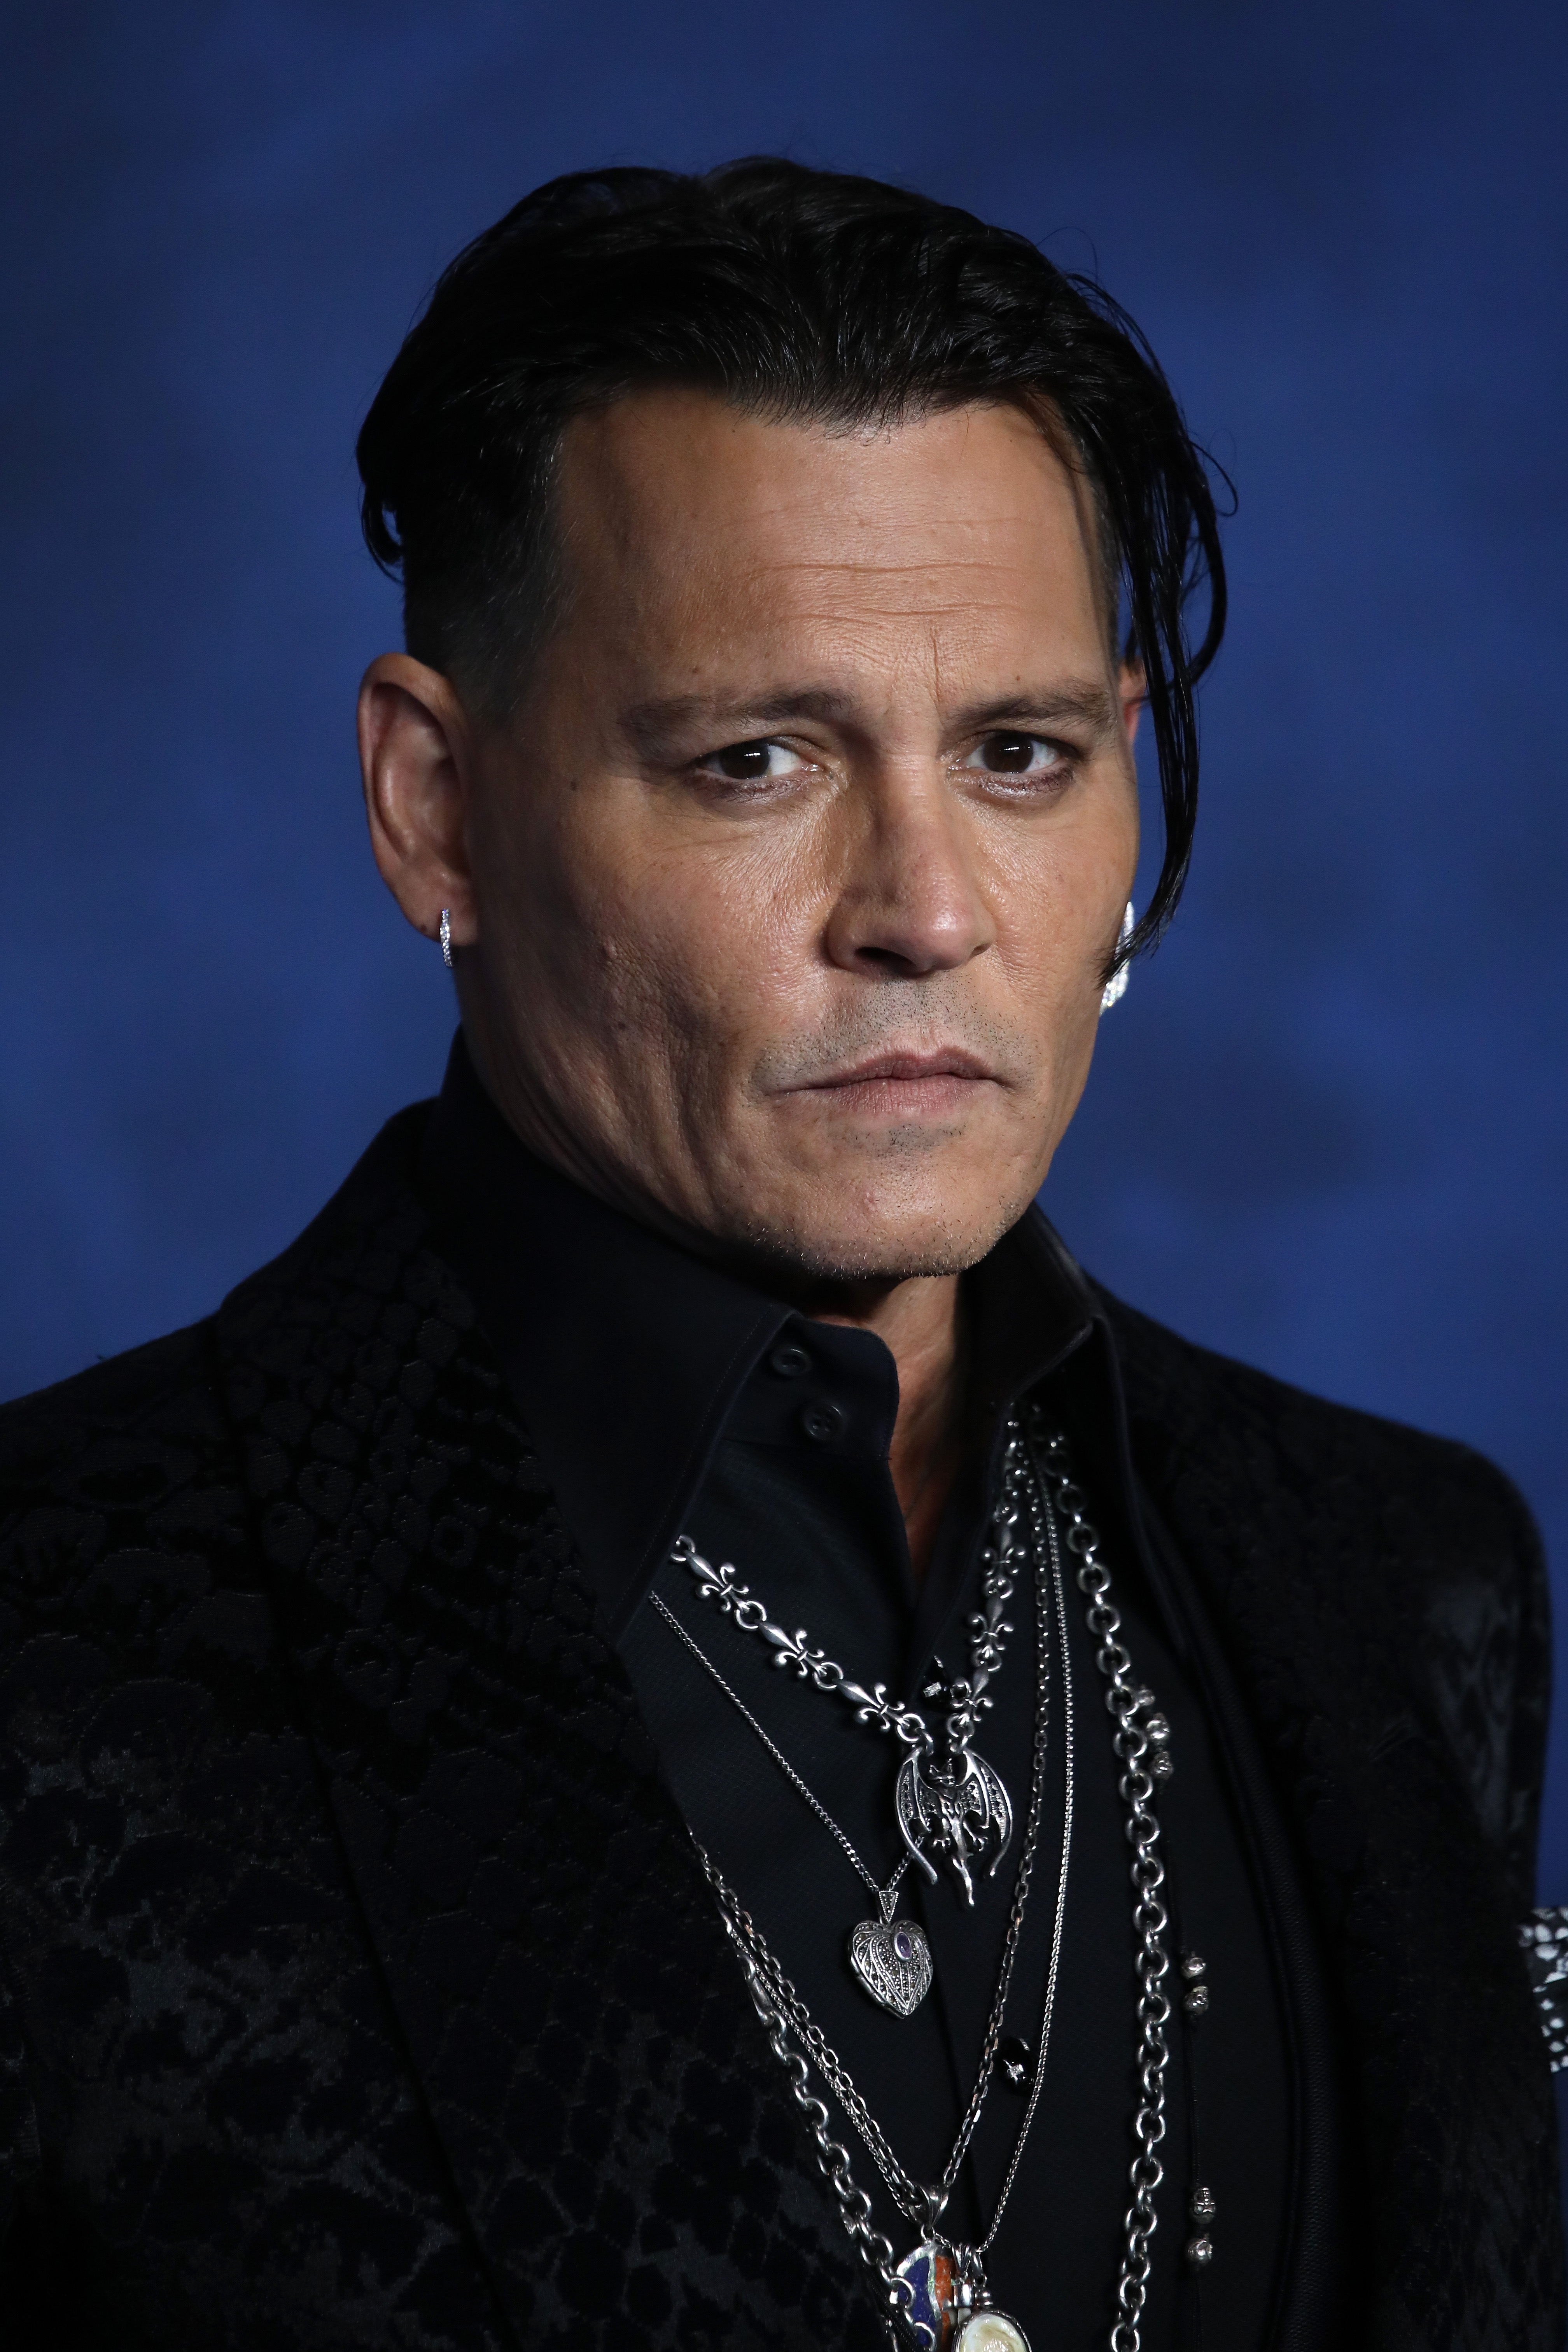 Johnny Depp's ongoing legal battle with his former legal team has been delayed (Source: Getty Images)